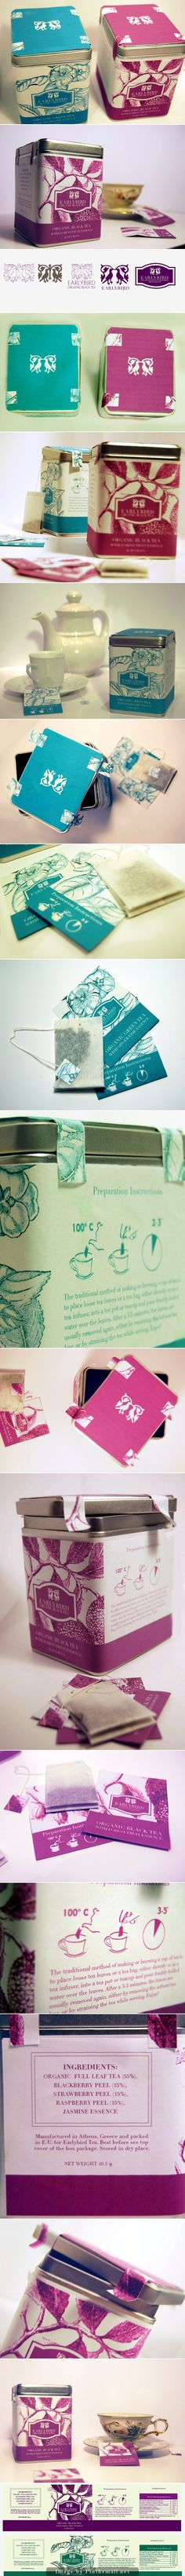 Lovely early bird organic tea #packaging curated by Packaging Diva PD  created via https://www.behance.net/gallery/Earlybird-Organic-Tea/8516531